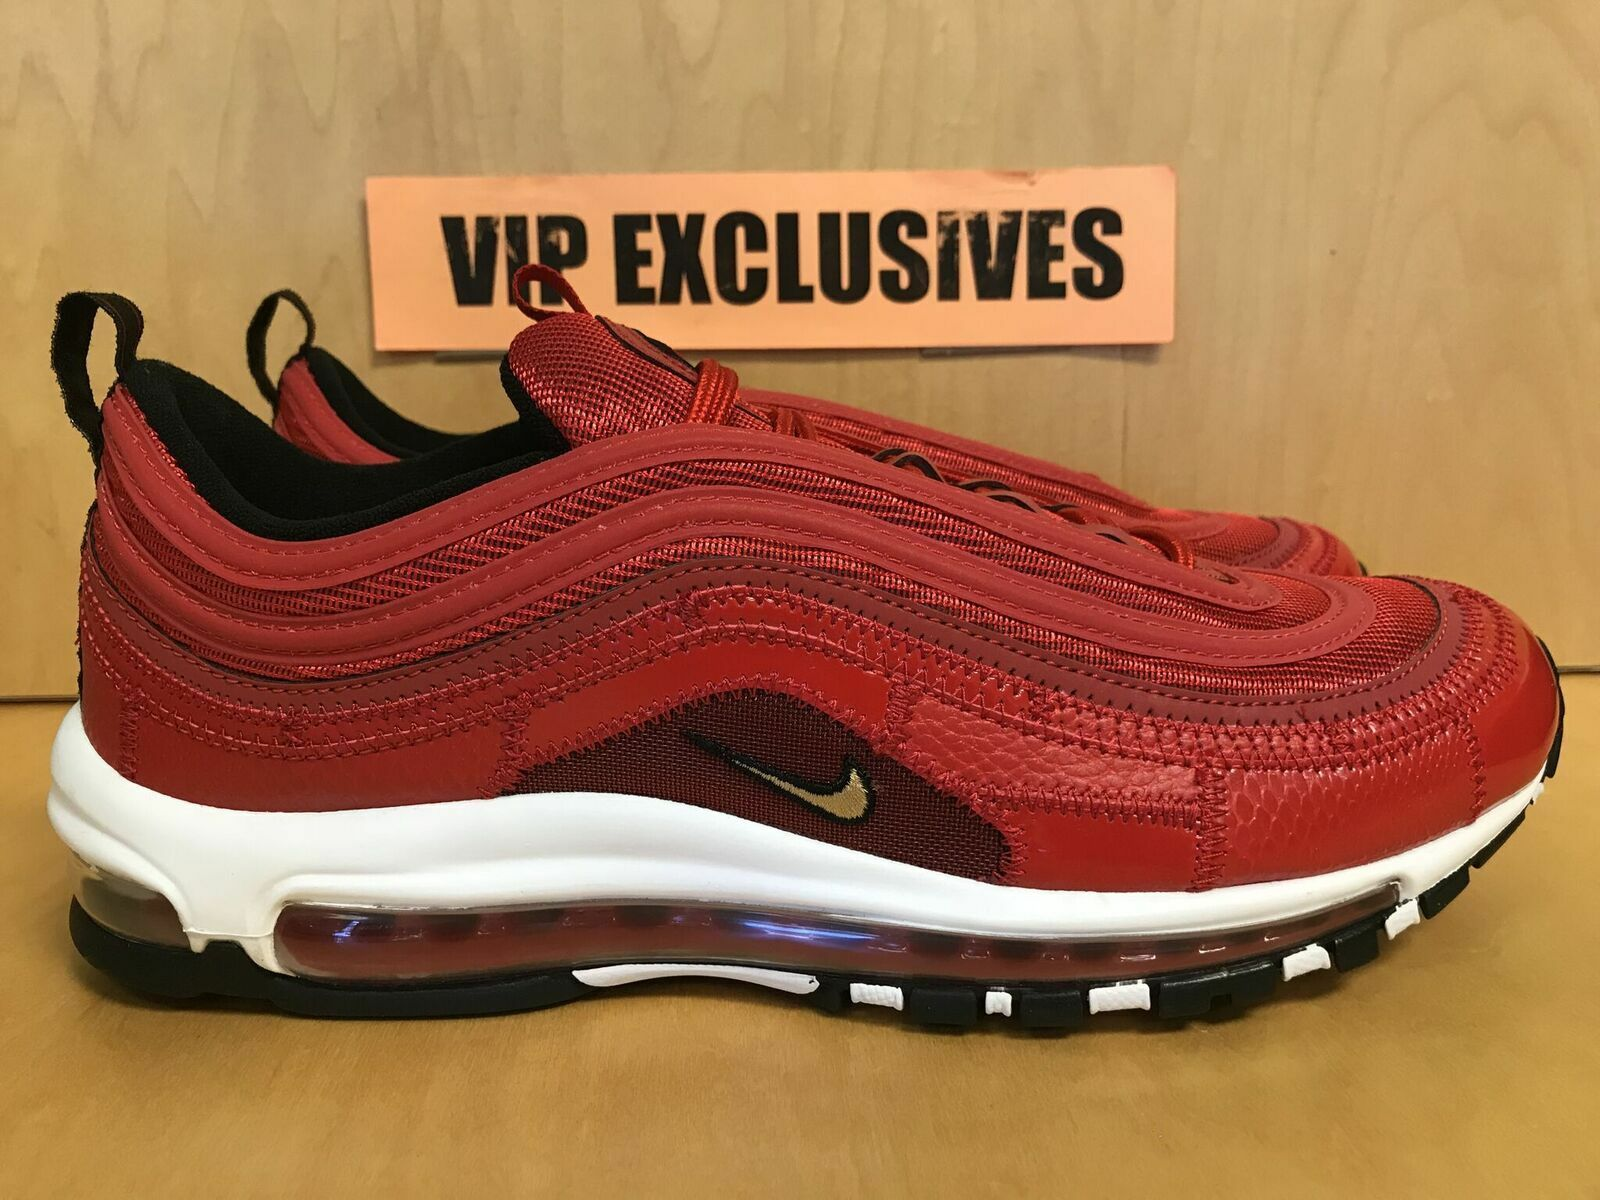 Nike Air Max Patchwork 97 CR7 Portugal Patchwork Max AQ0655-600 LIMITED 576066